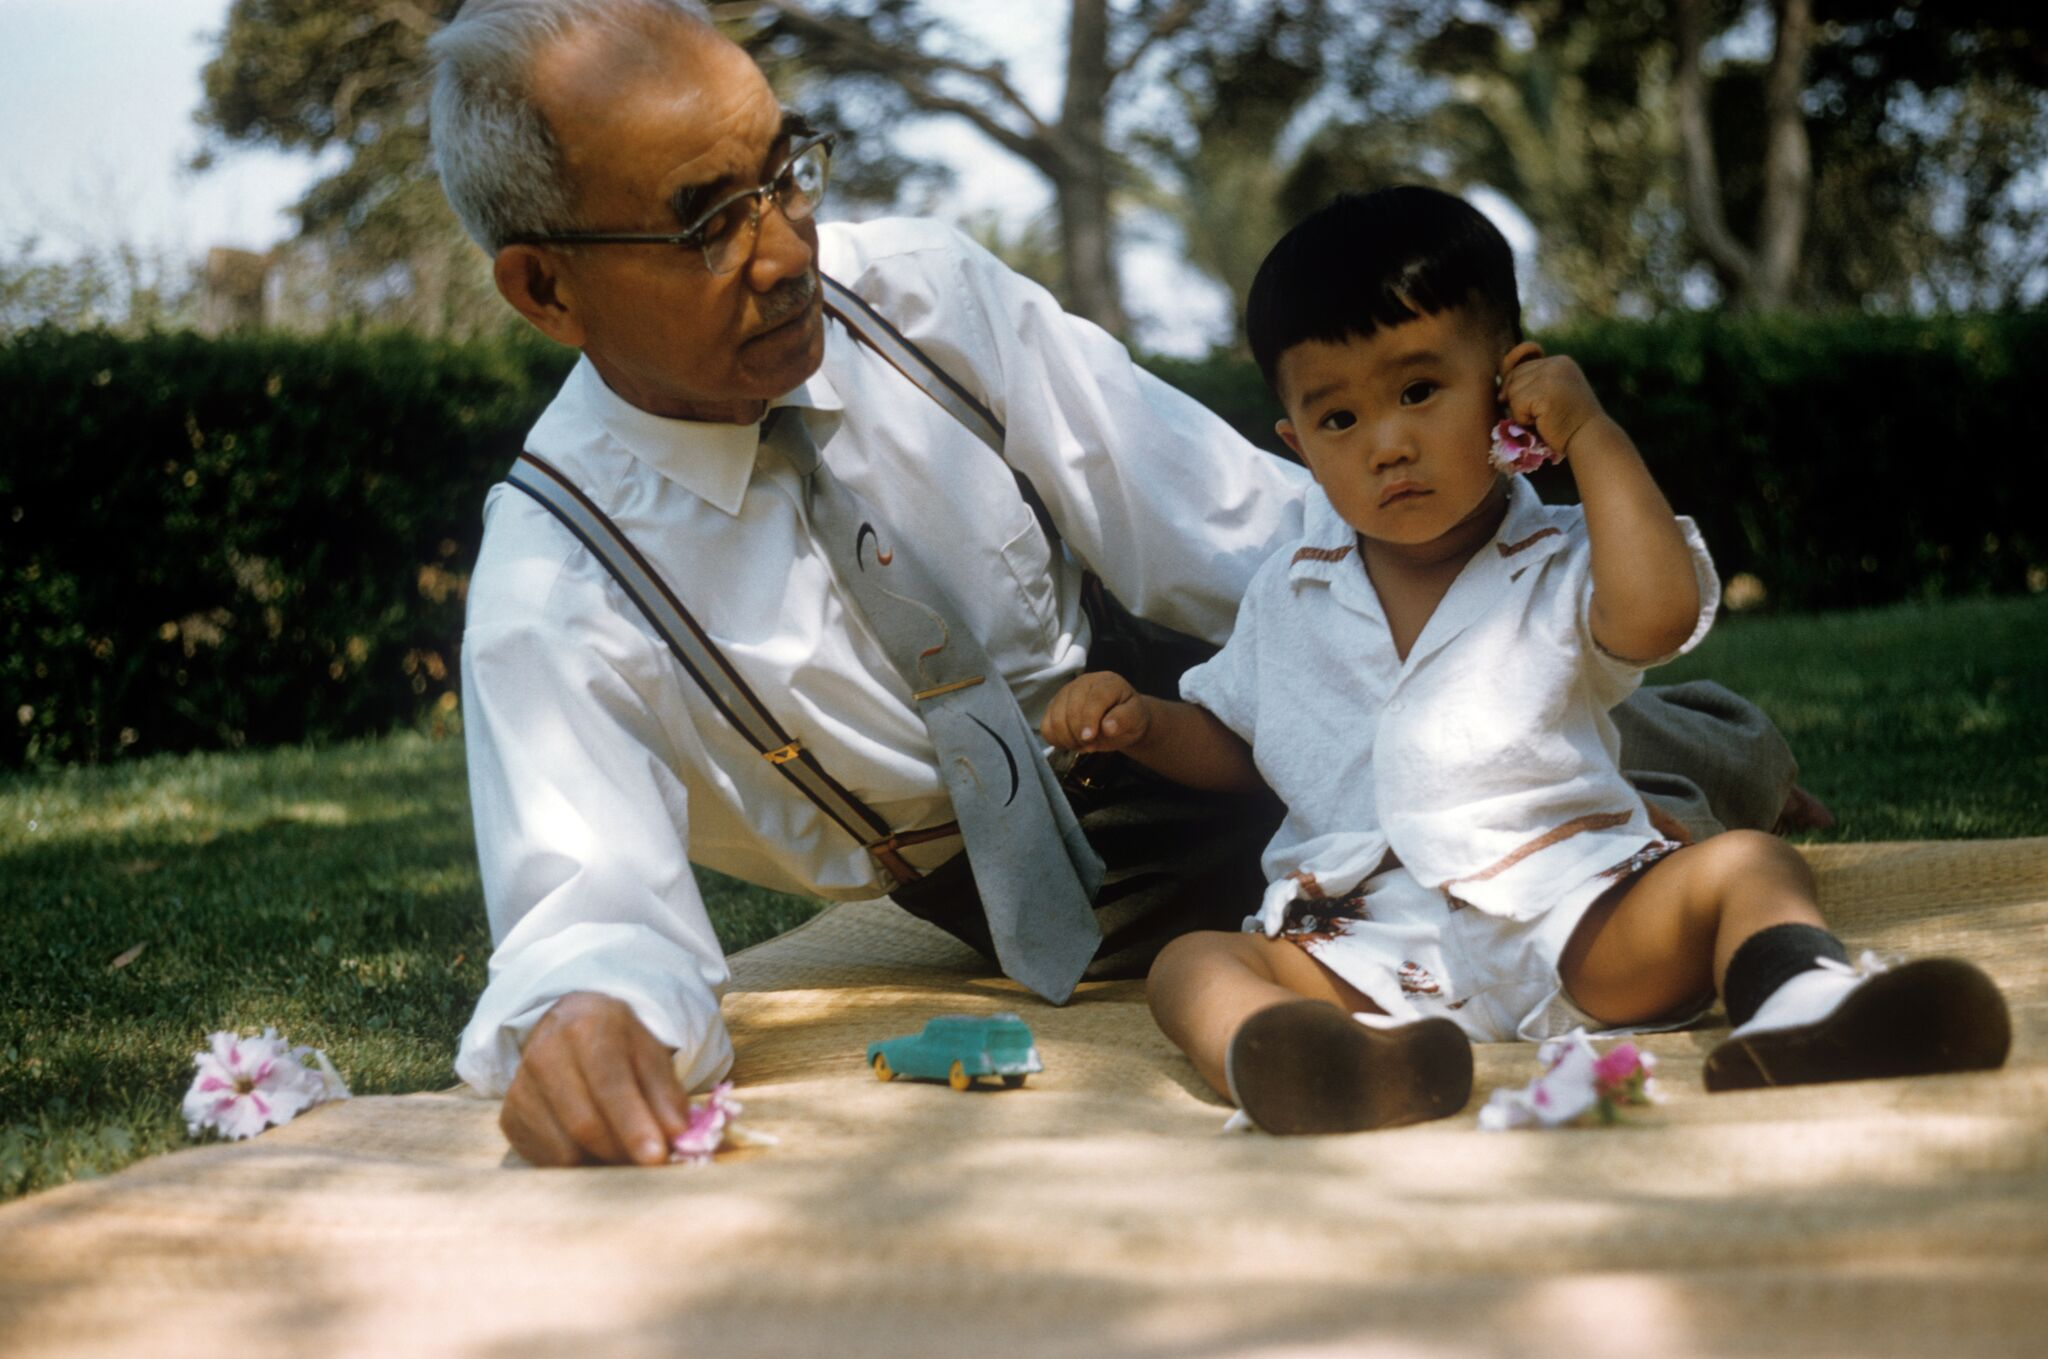 Paul Takemoto and his grandfather